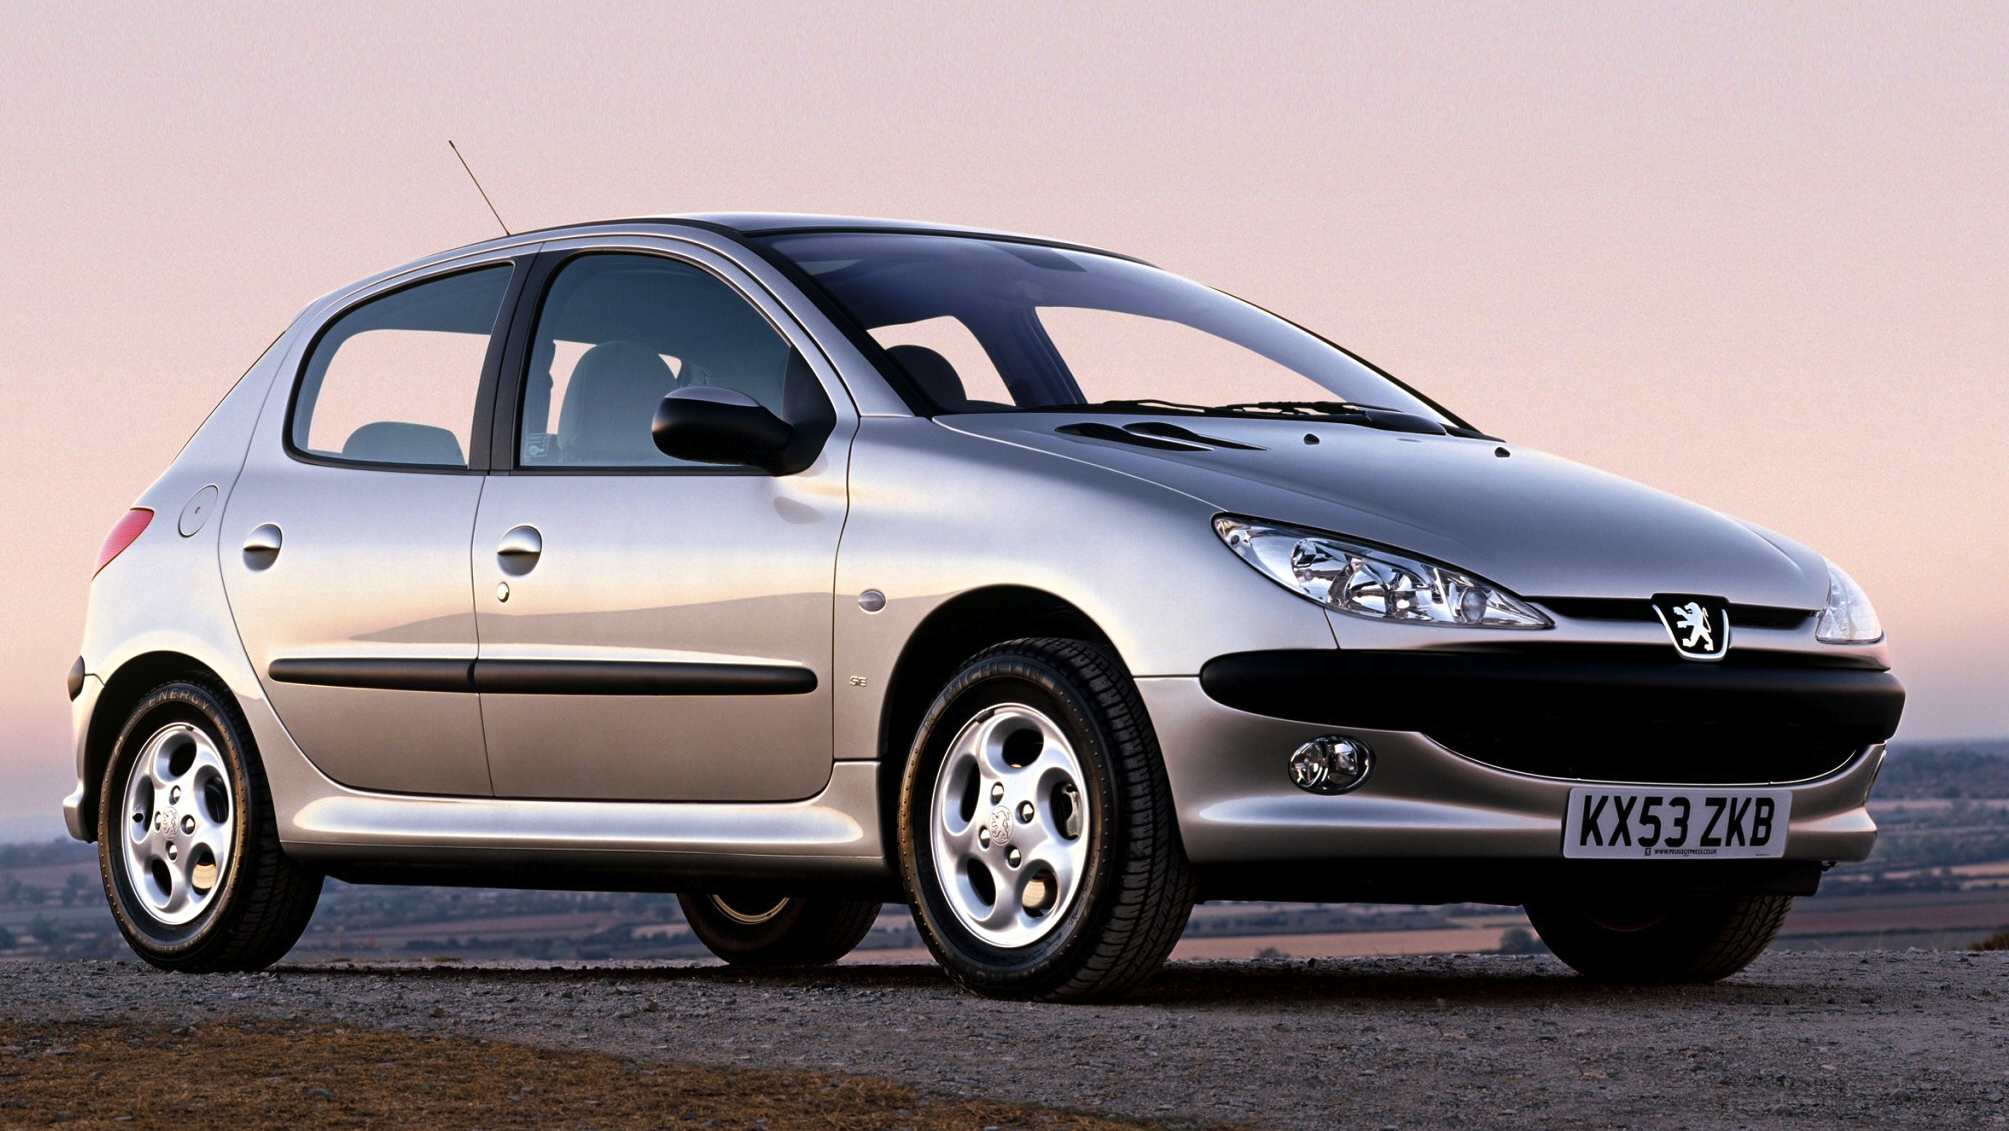 europe 2003: peugeot 206 most popular, golf down to #2 – best